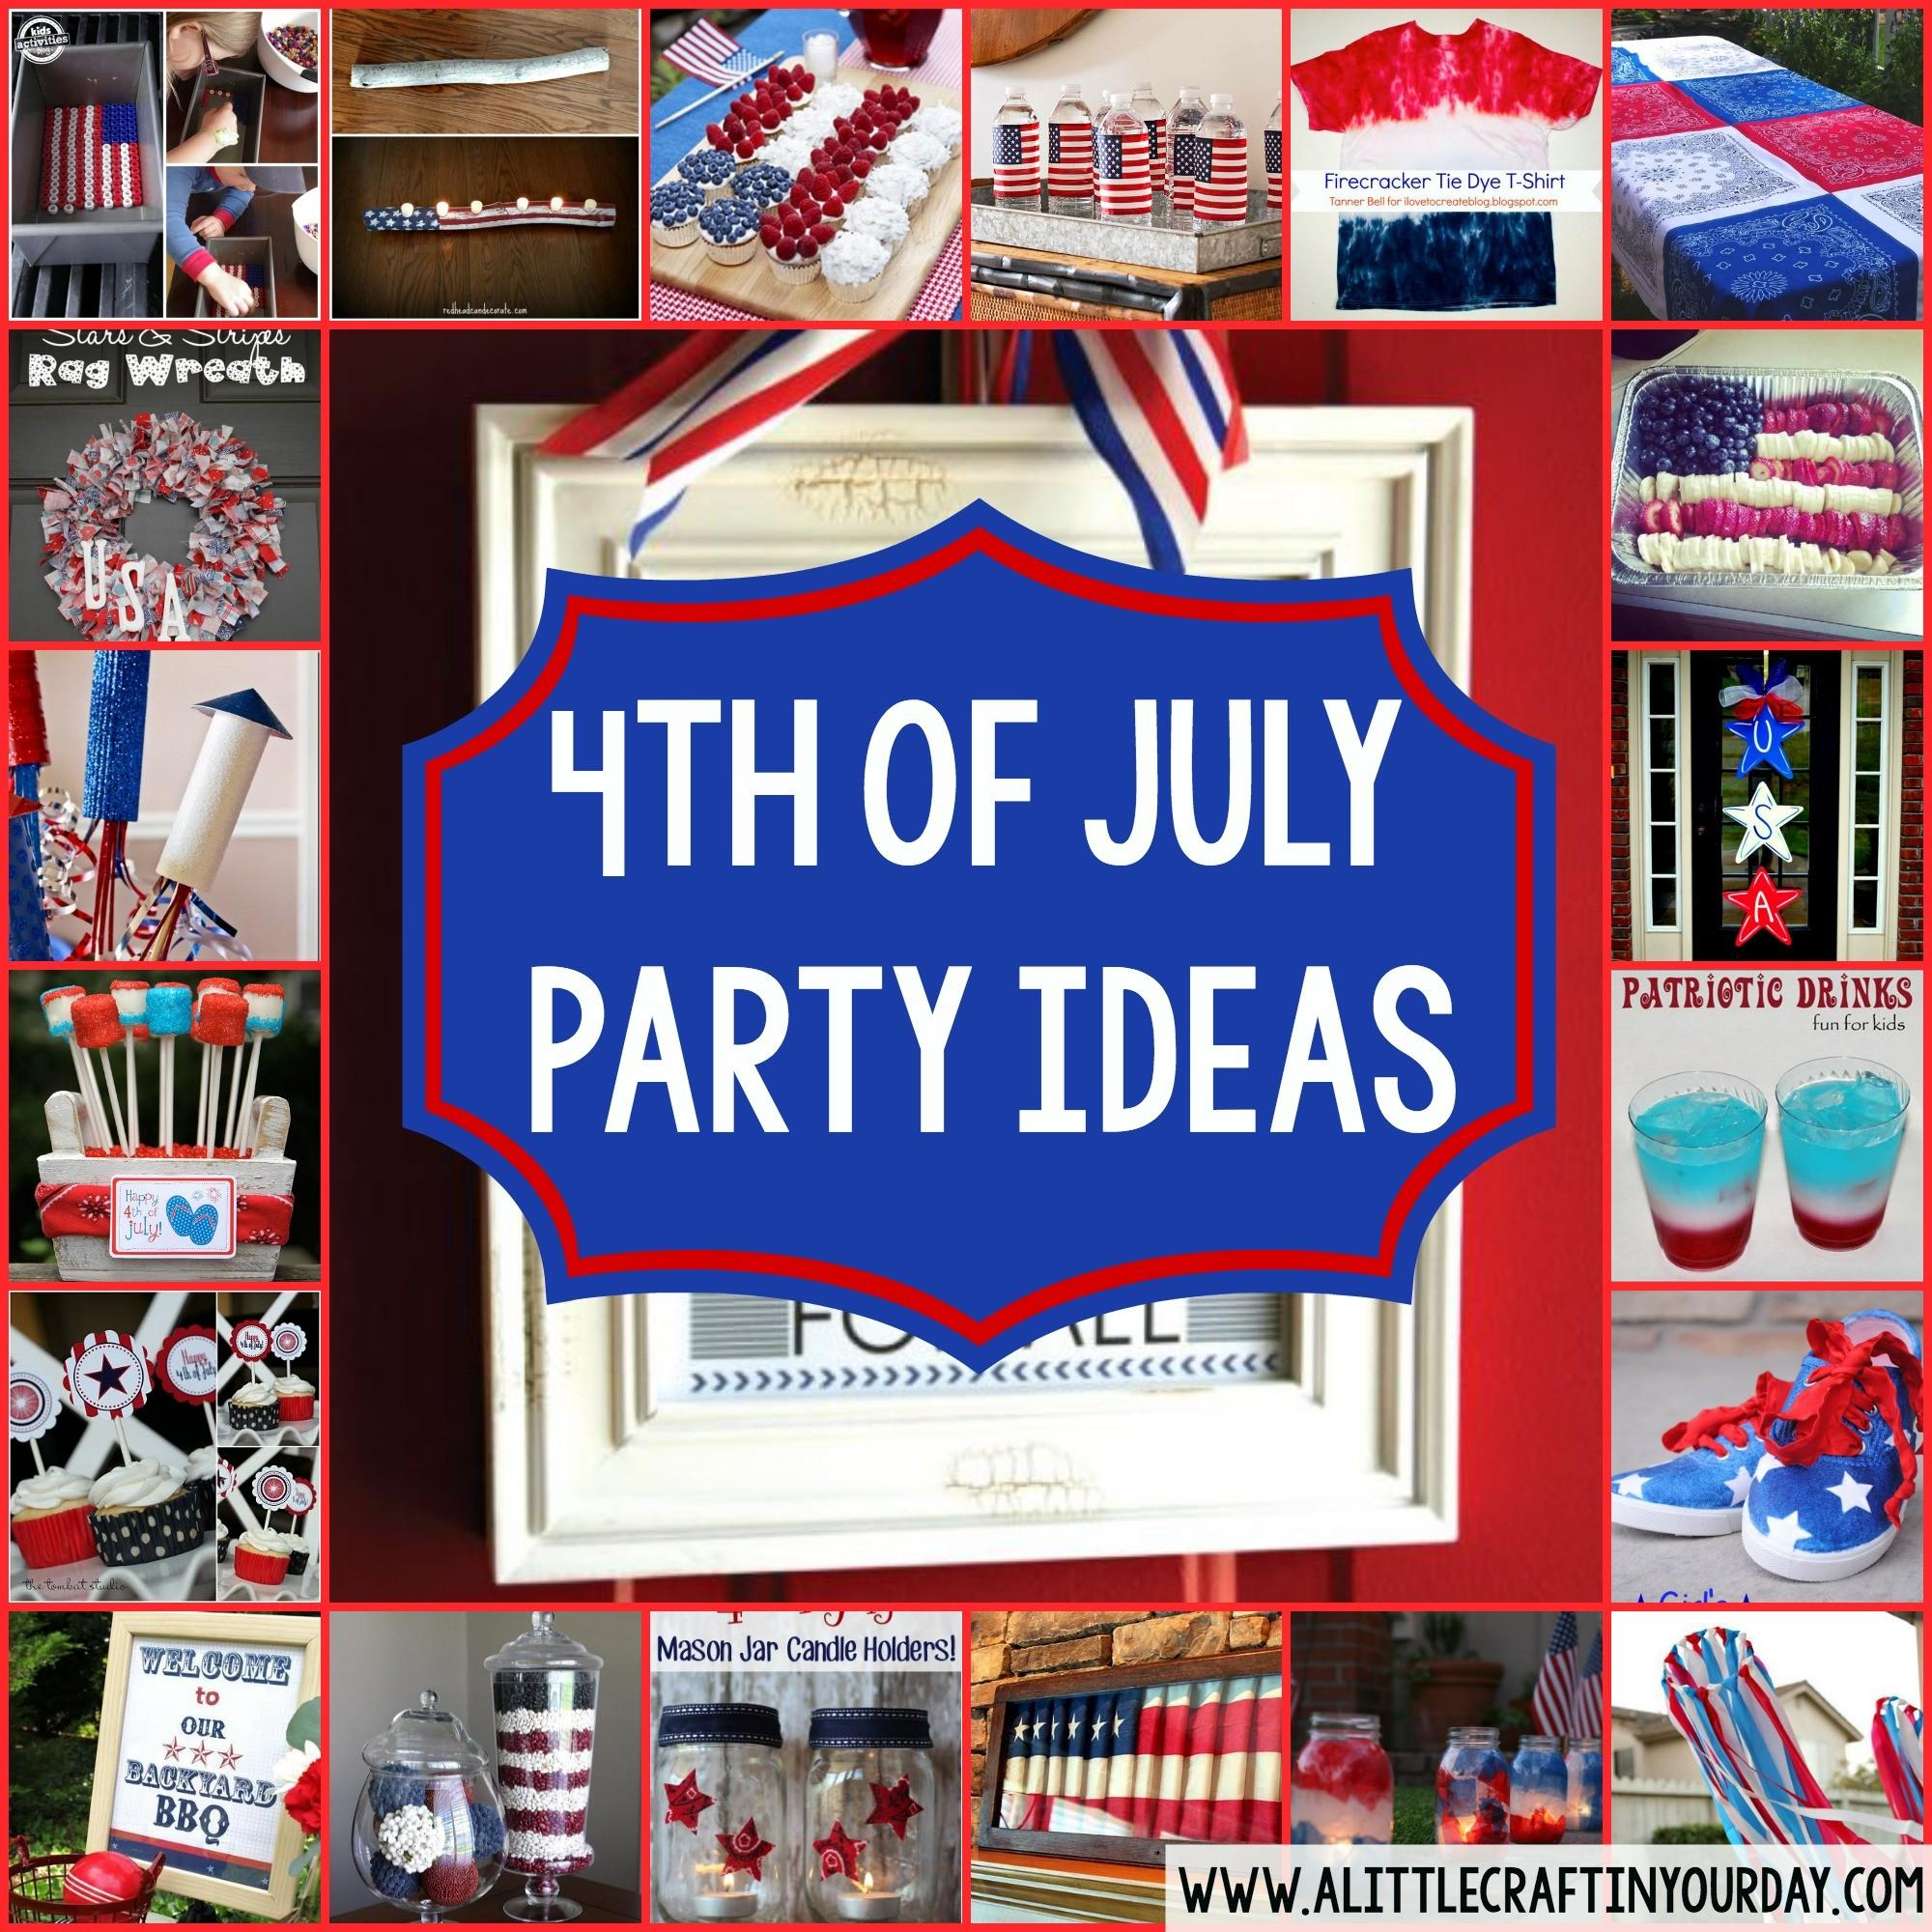 4th July Party Ideas Little Craft Your Day